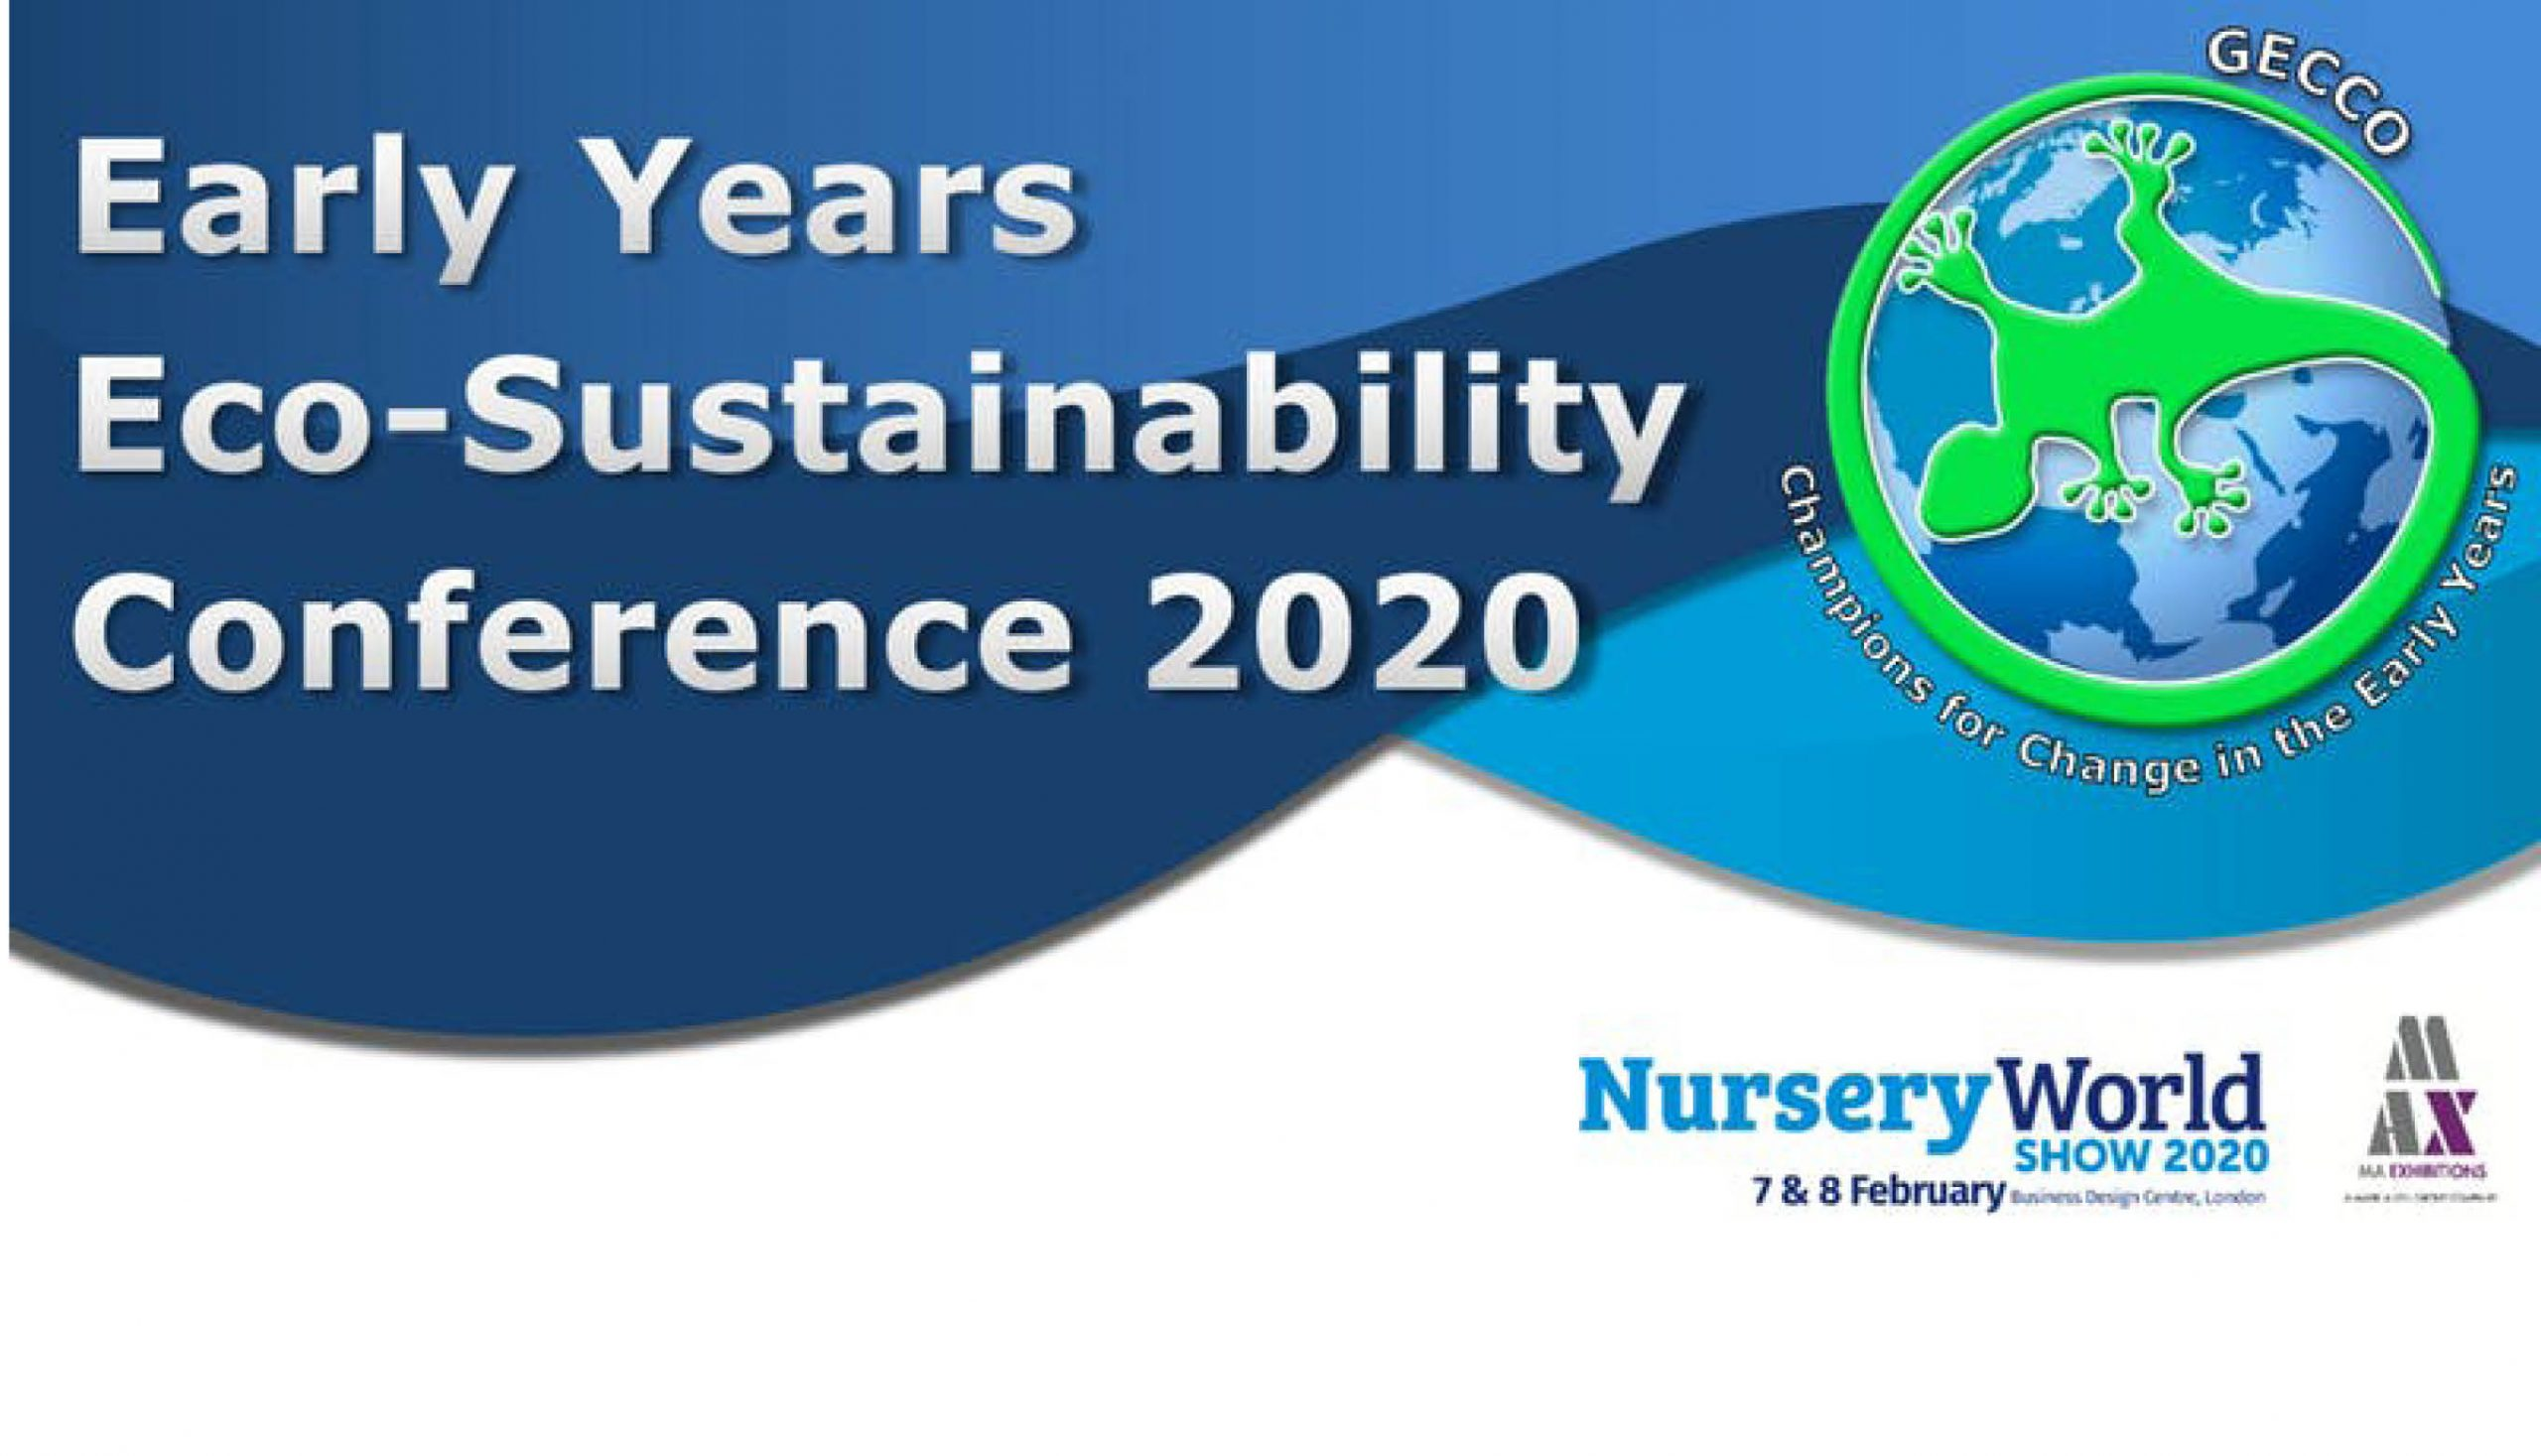 Early Years Eco-Sustainability Conferences 2020